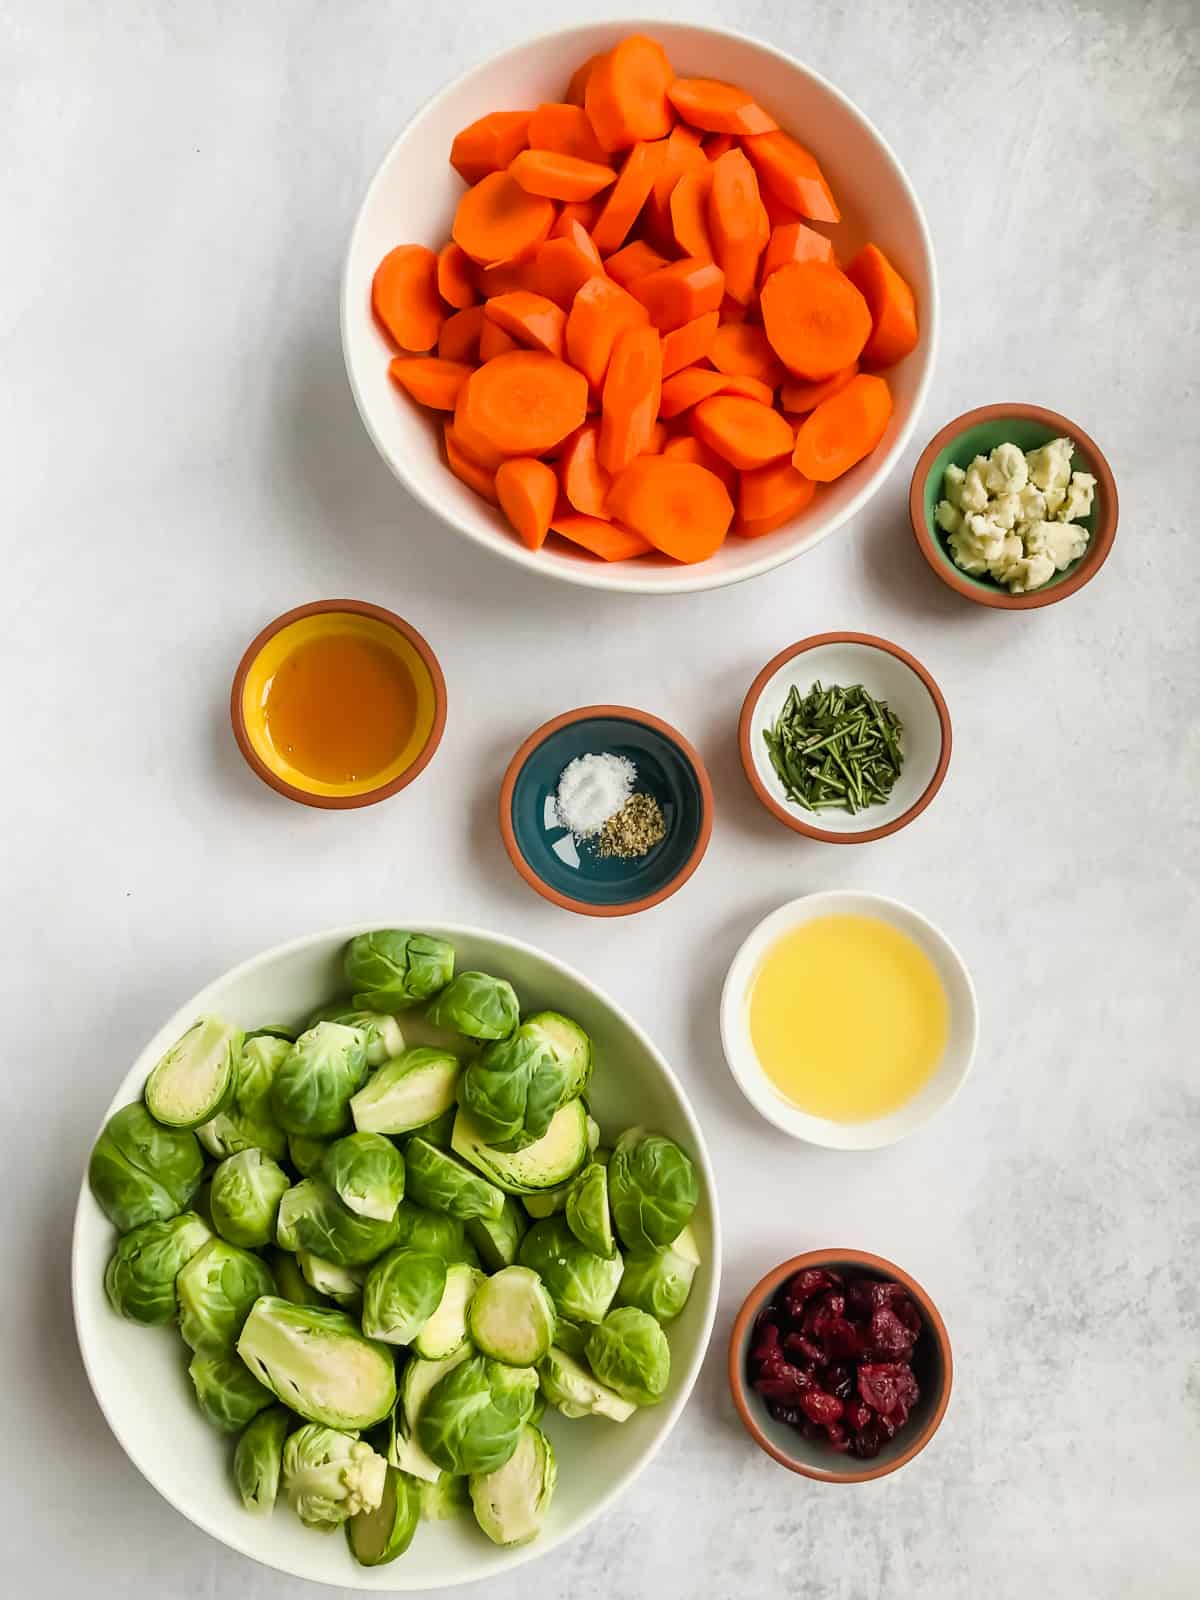 ingredients in bowls on white surface: carrots, brussels sprouts, honey, salt, pepper, oil, herbs, cranberries, cheese